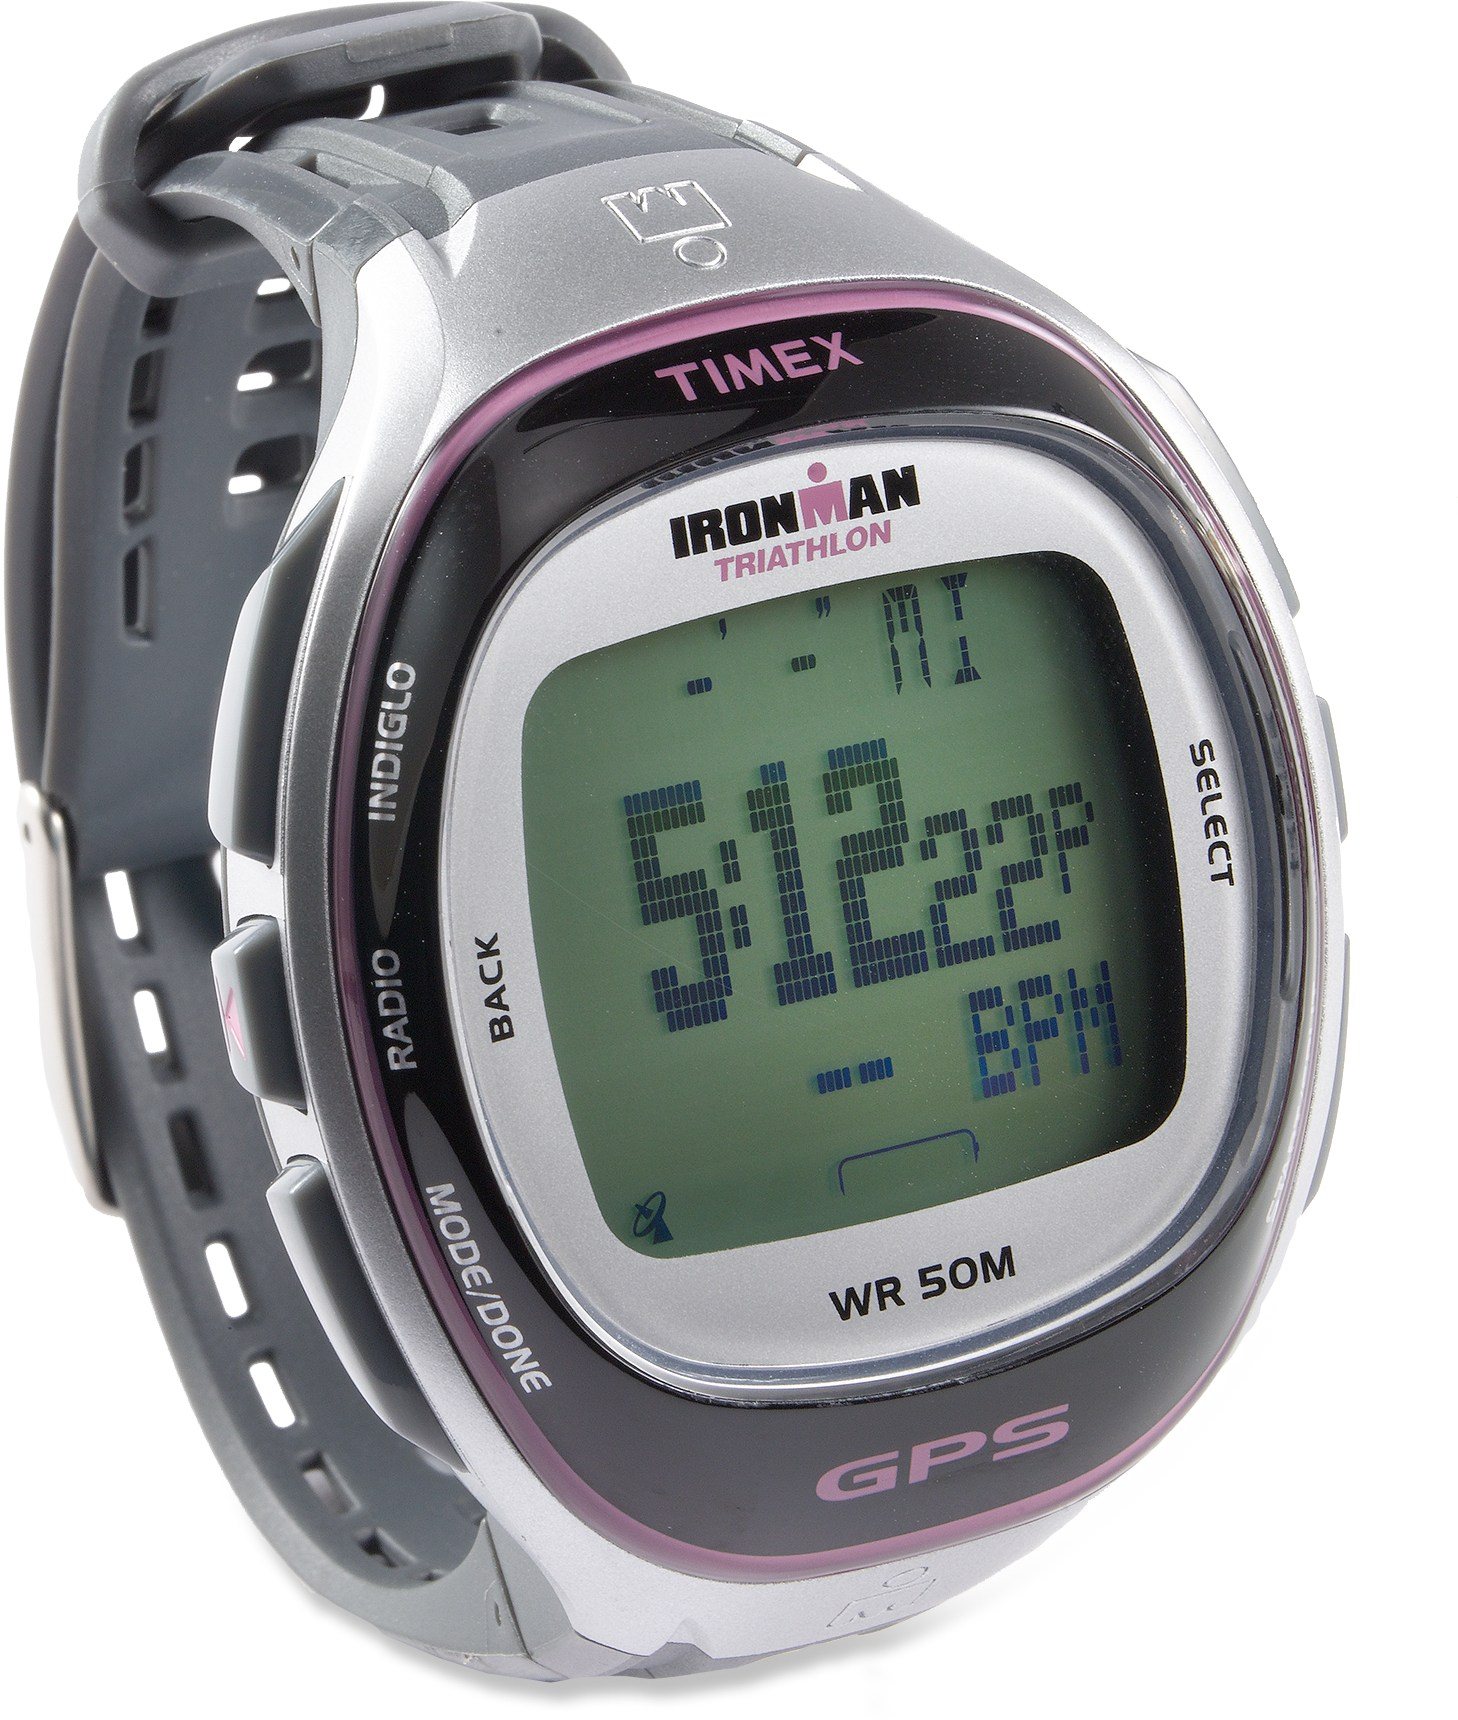 Timex Women's Ironman Run Trainer Watch Silver/Pink w/ GPS at Sears.com